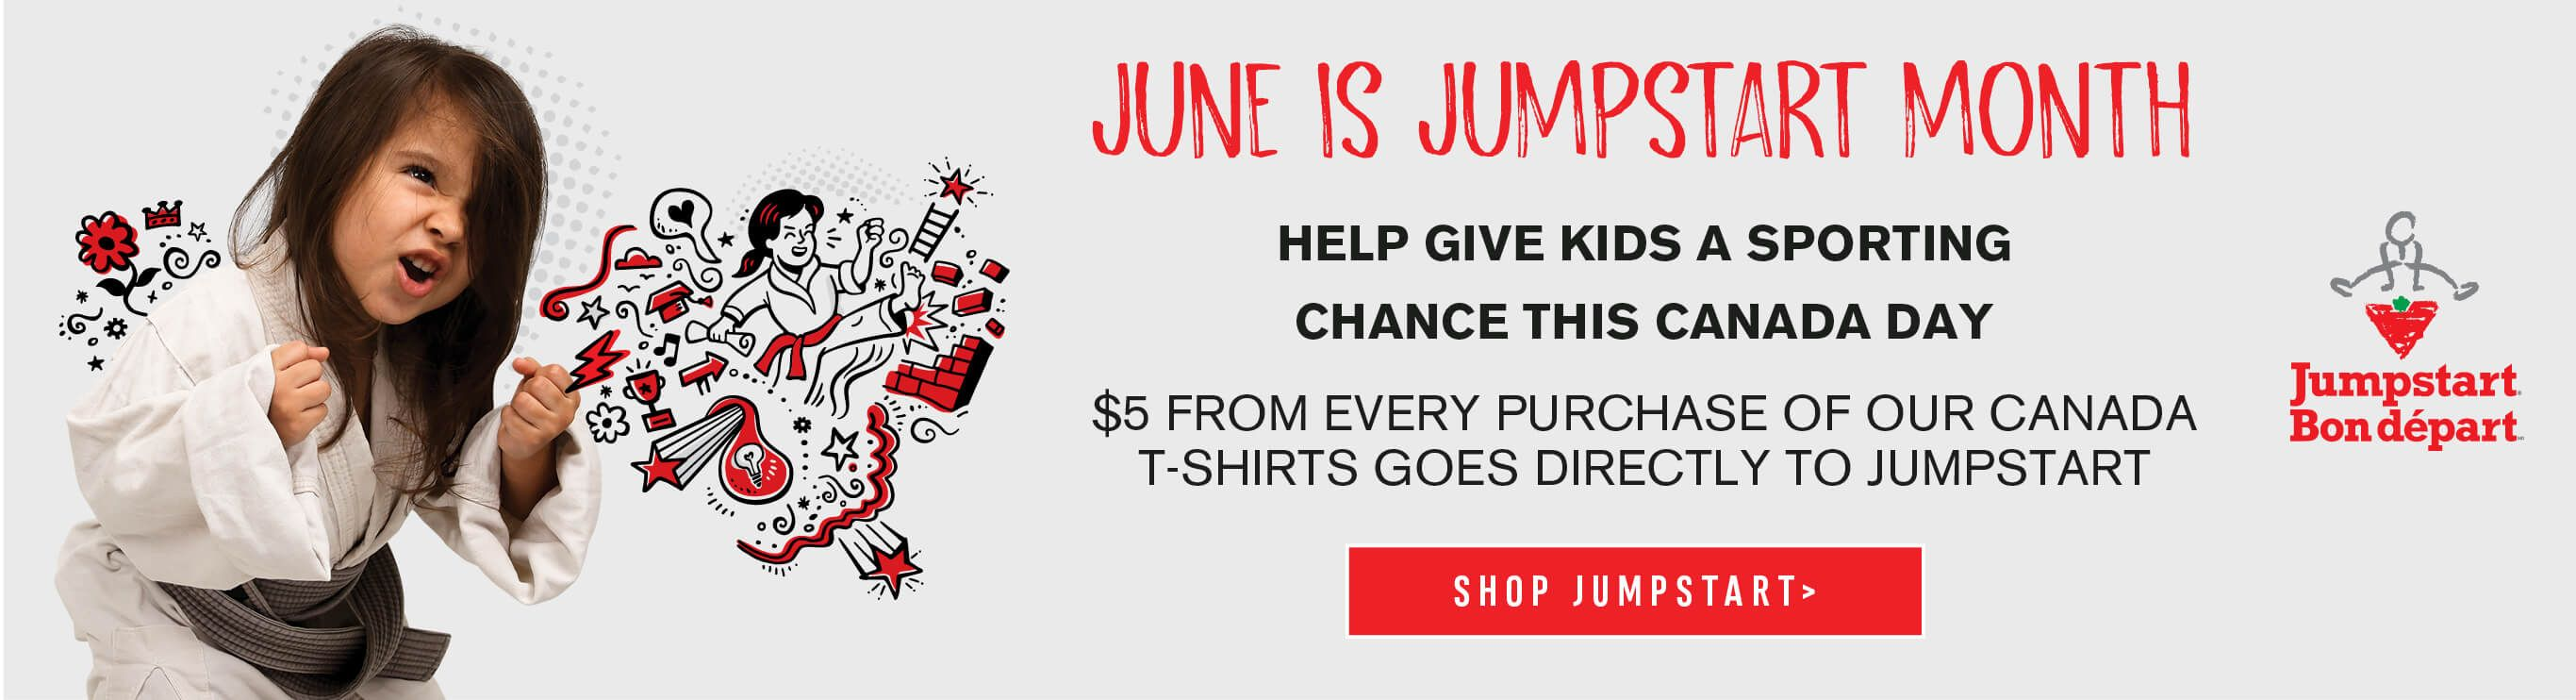 June is Jumpstart Month. Help give kids a sporting chance this Canada Day. $5 from every purchase of our Canada T-shirts goes directly to Jumpstart. Shop Jumpstart.